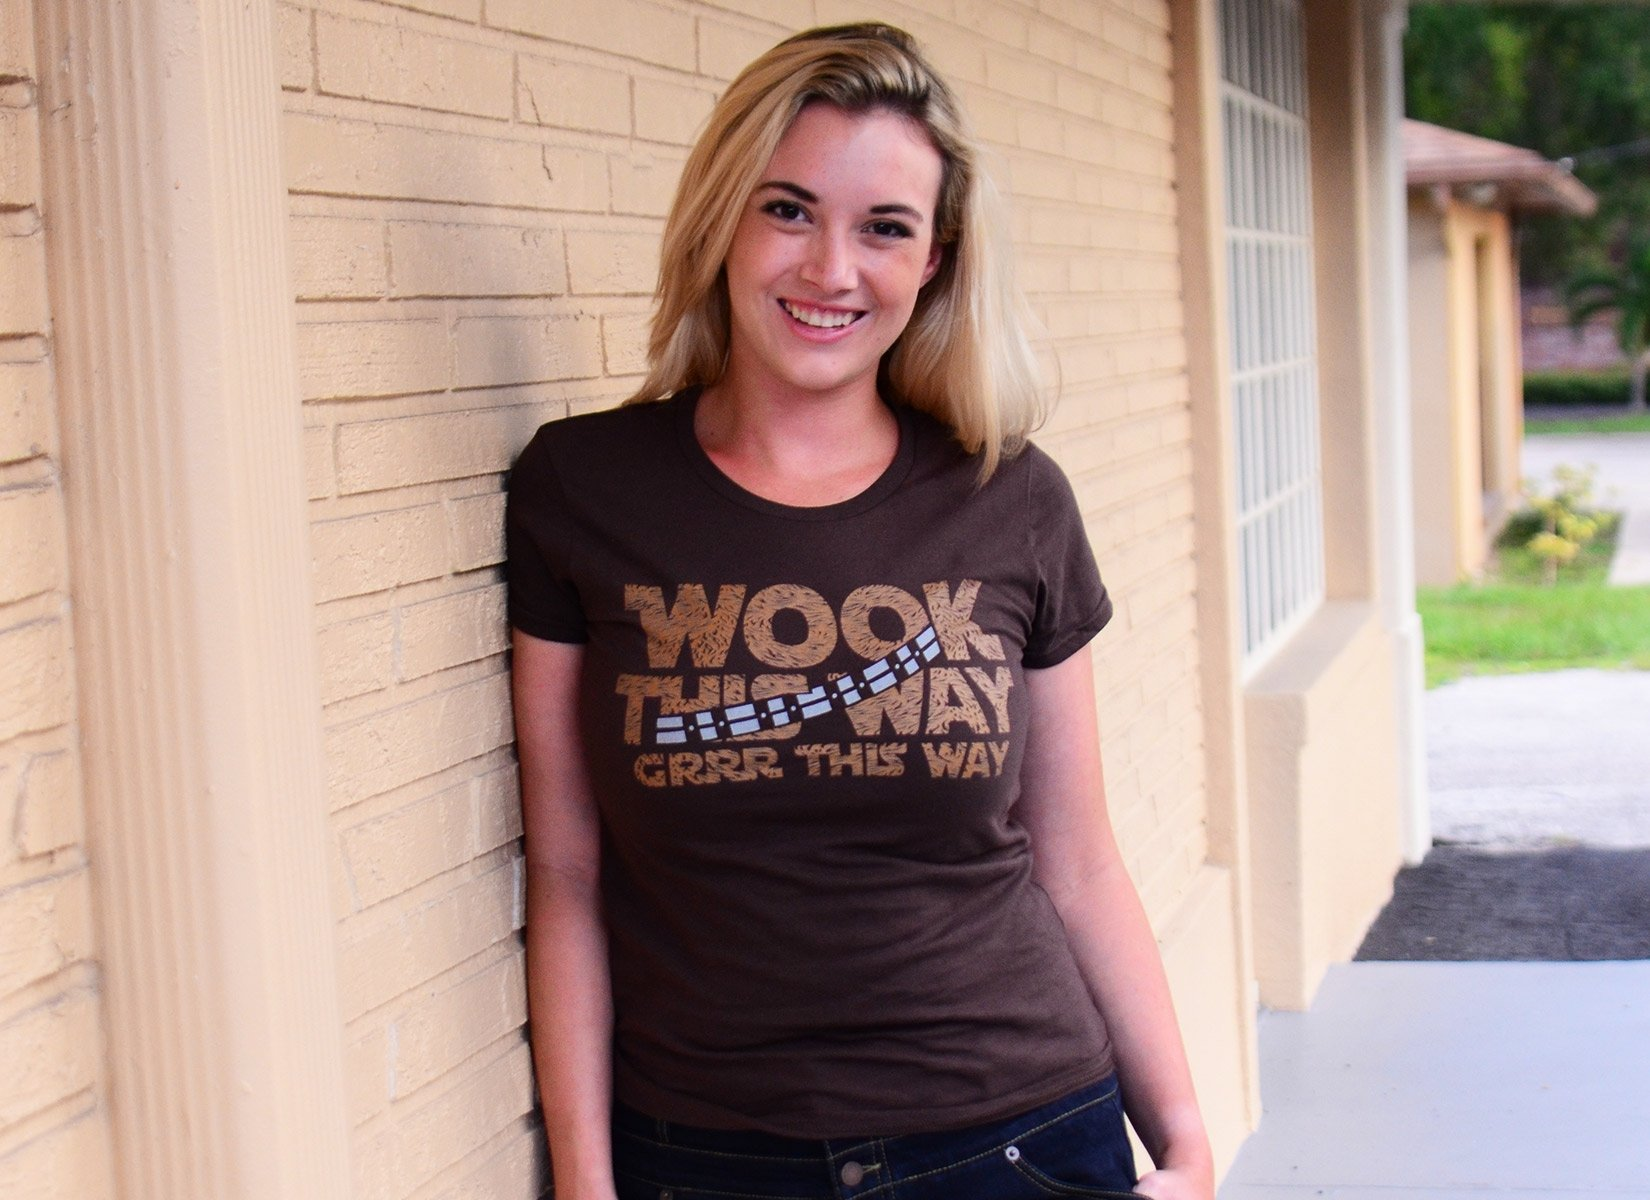 Wook This Way on Womens T-Shirt